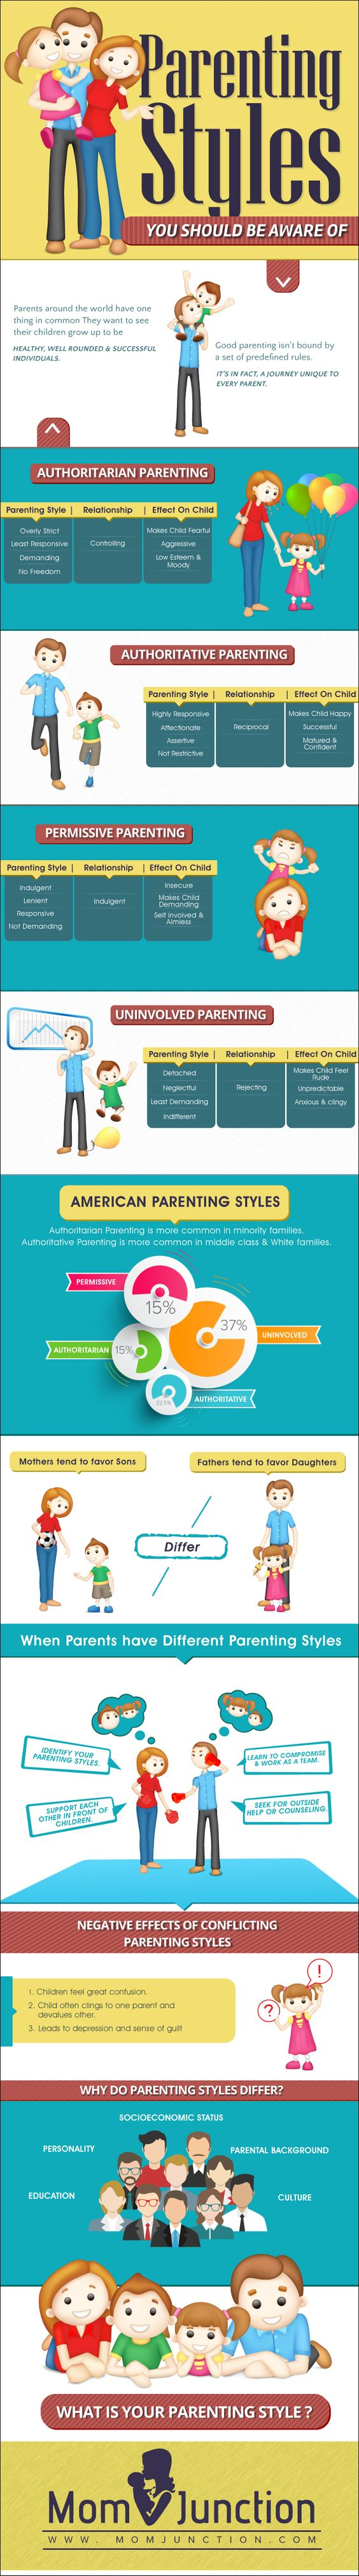 Parenting styles: An evidence-based guide